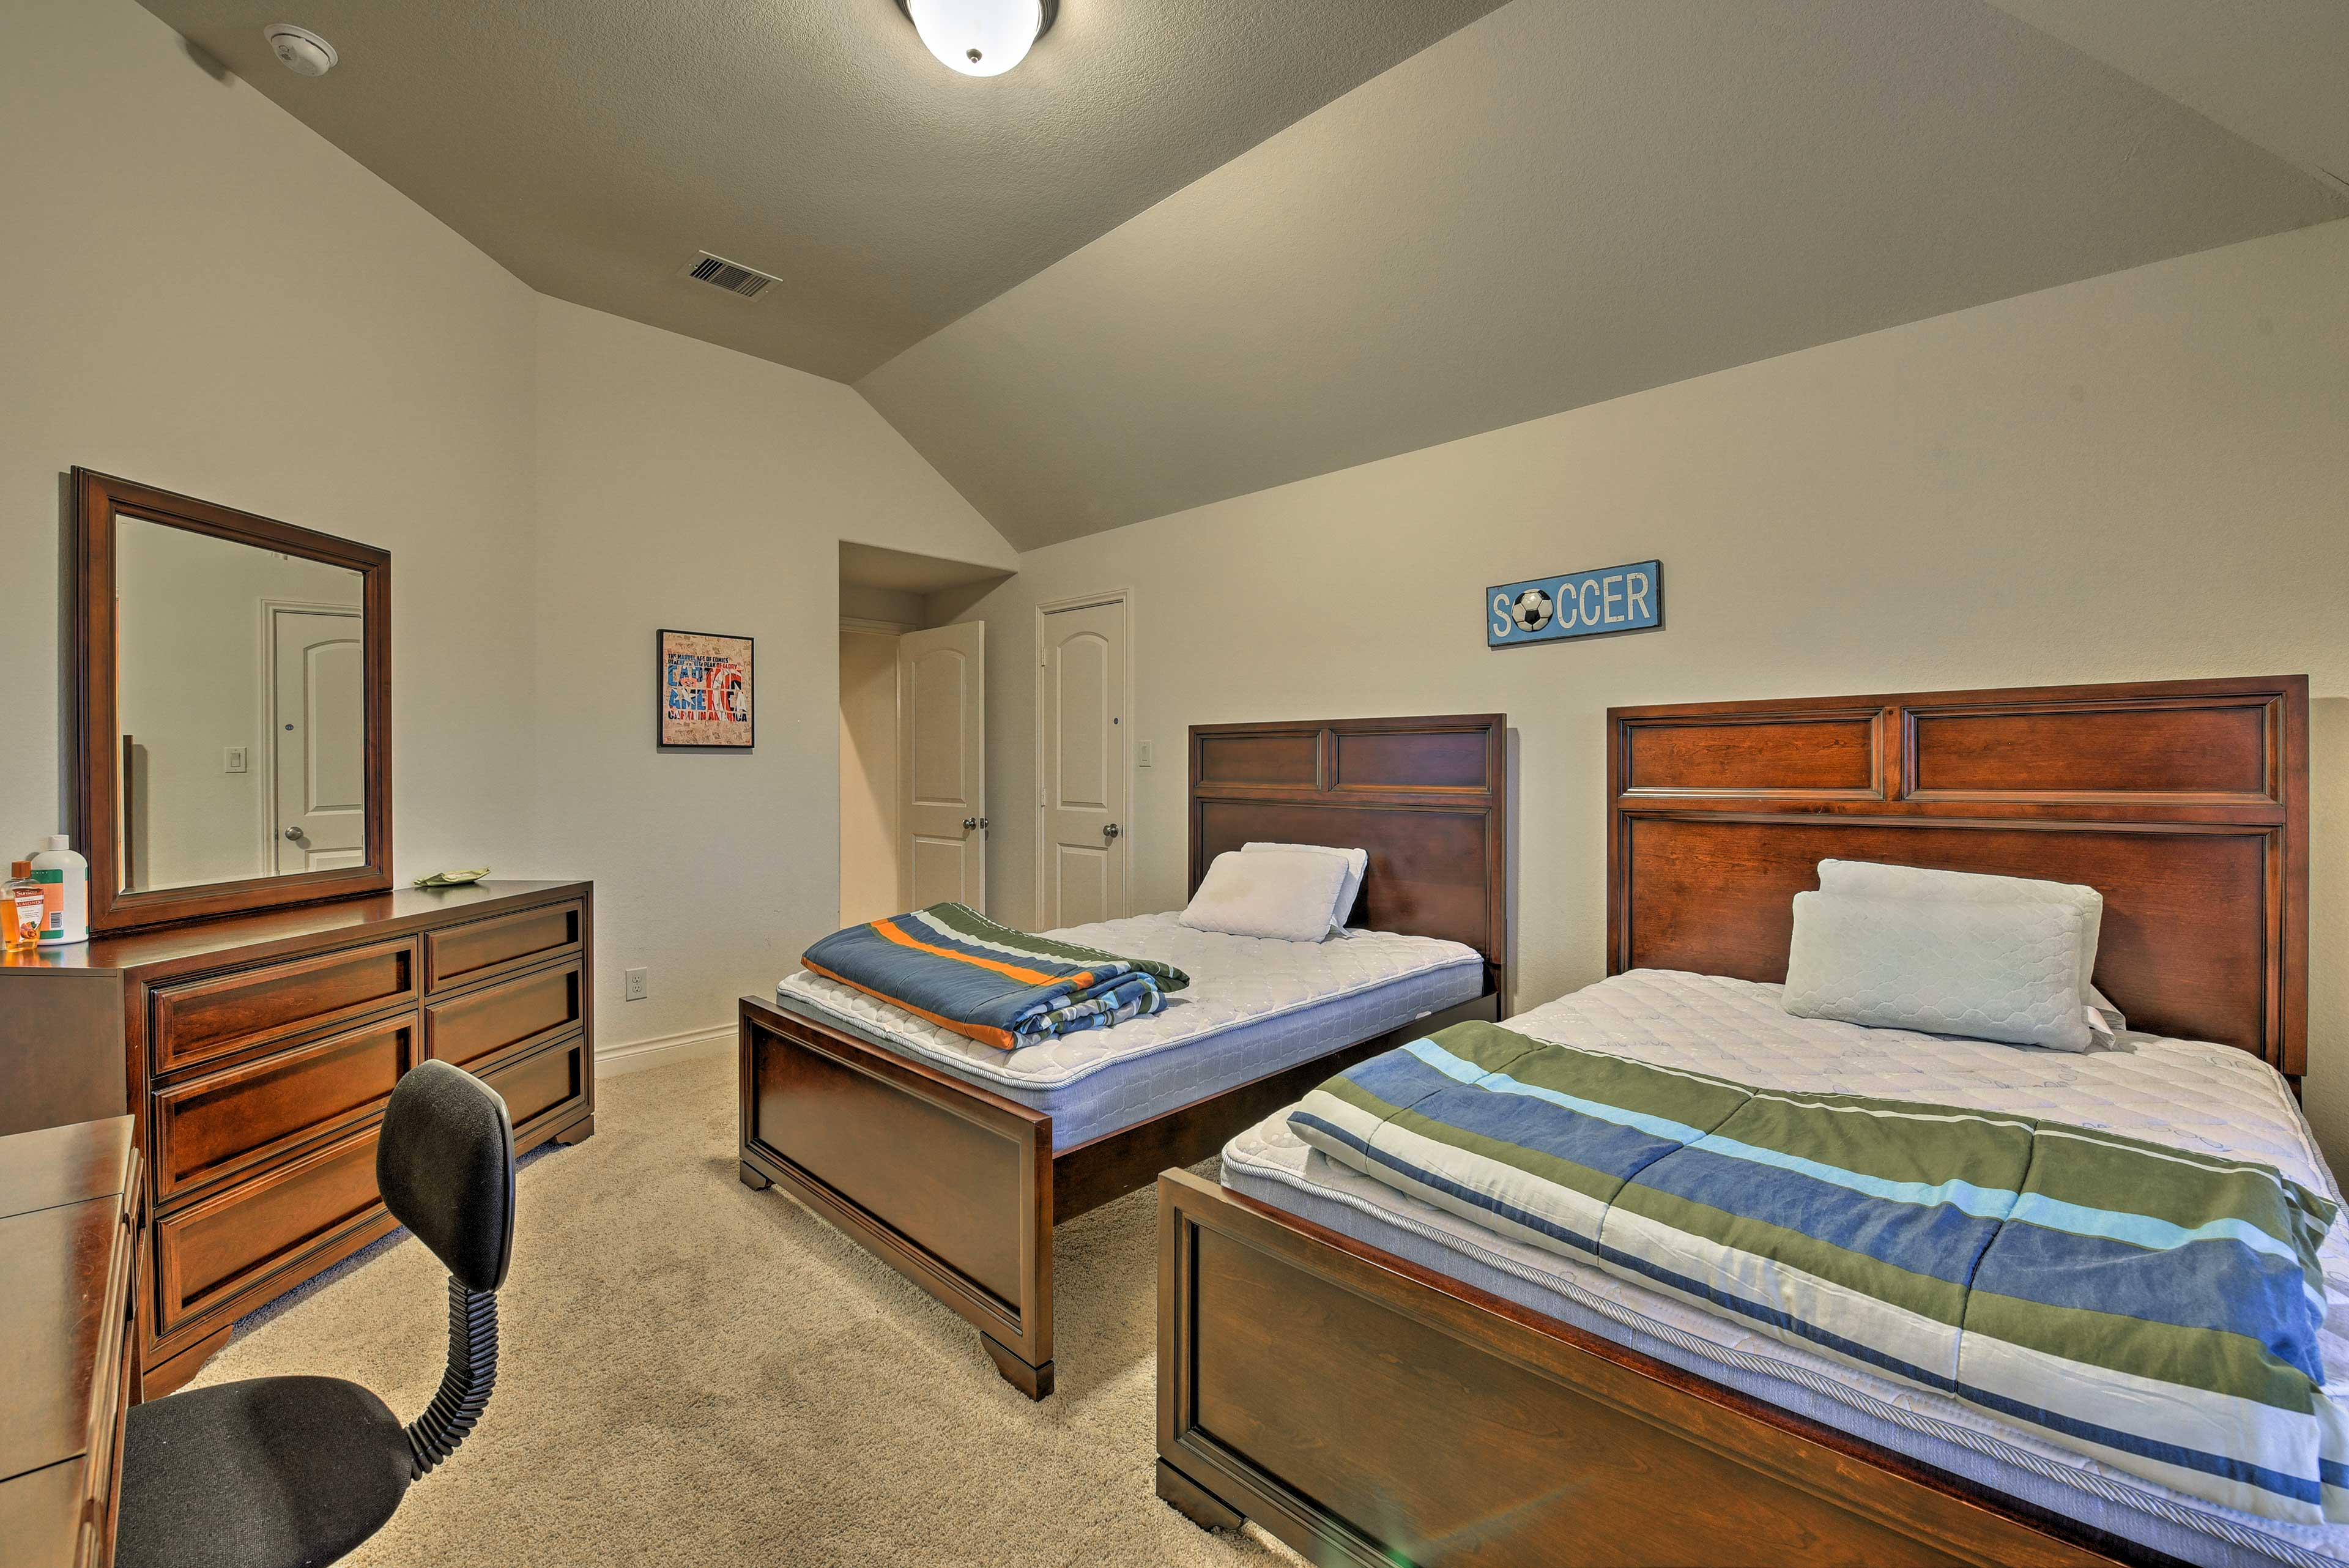 Your kiddos will love sharing this bedroom!